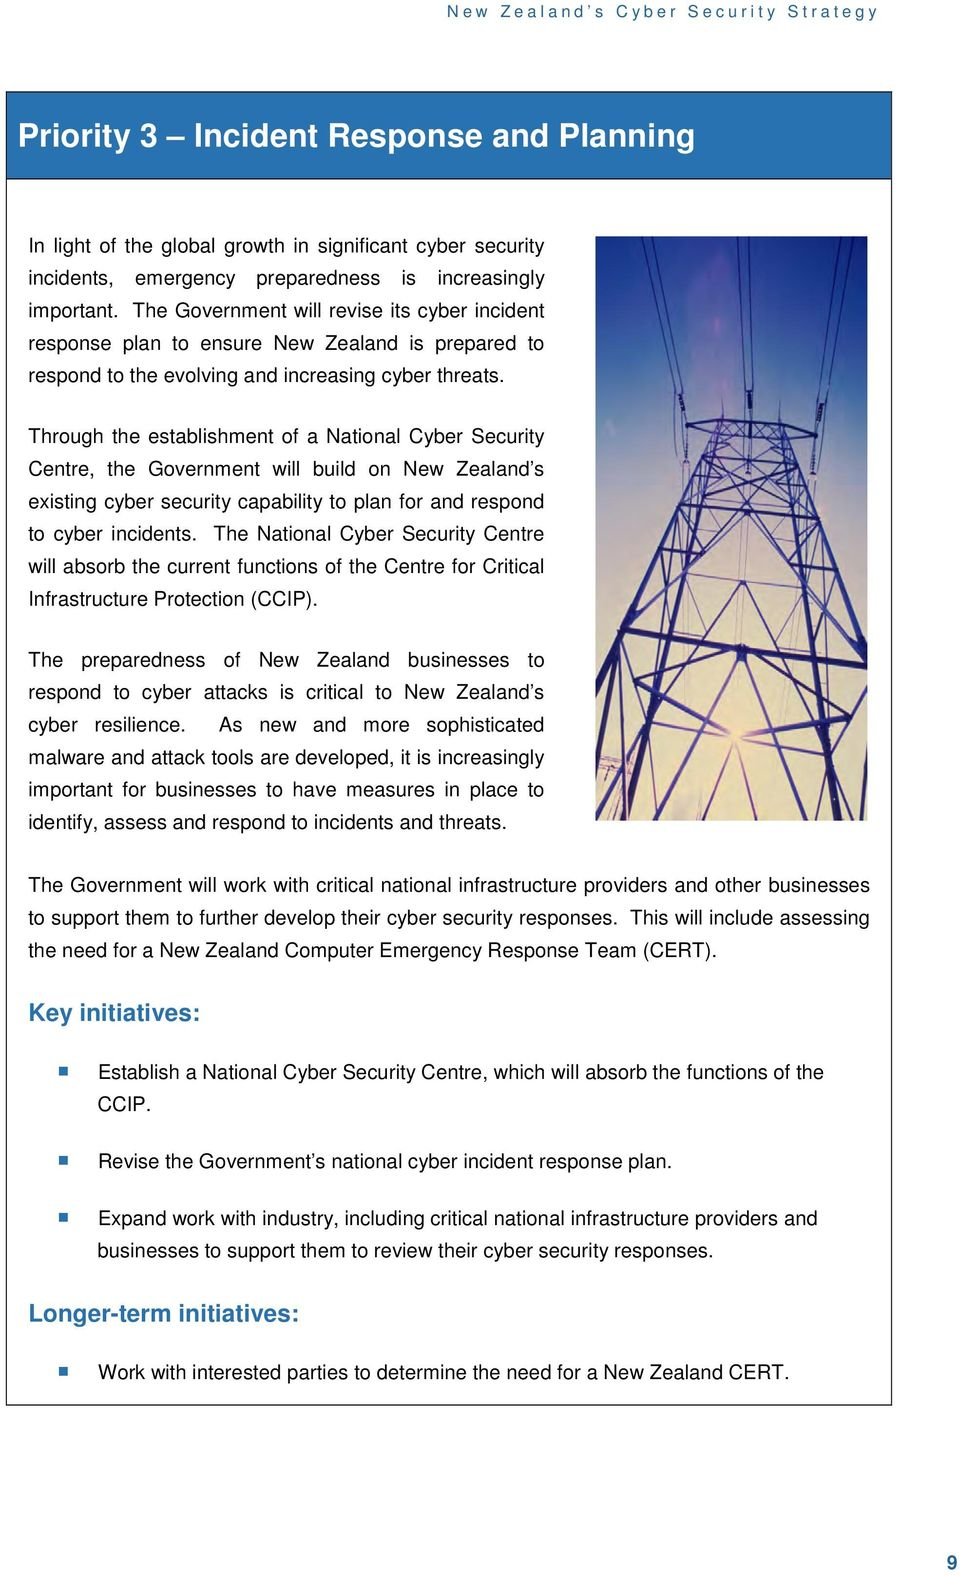 Through the establishment of a National Cyber Security Centre, the Government will build on New Zealand s existing cyber security capability to plan for and respond to cyber incidents.